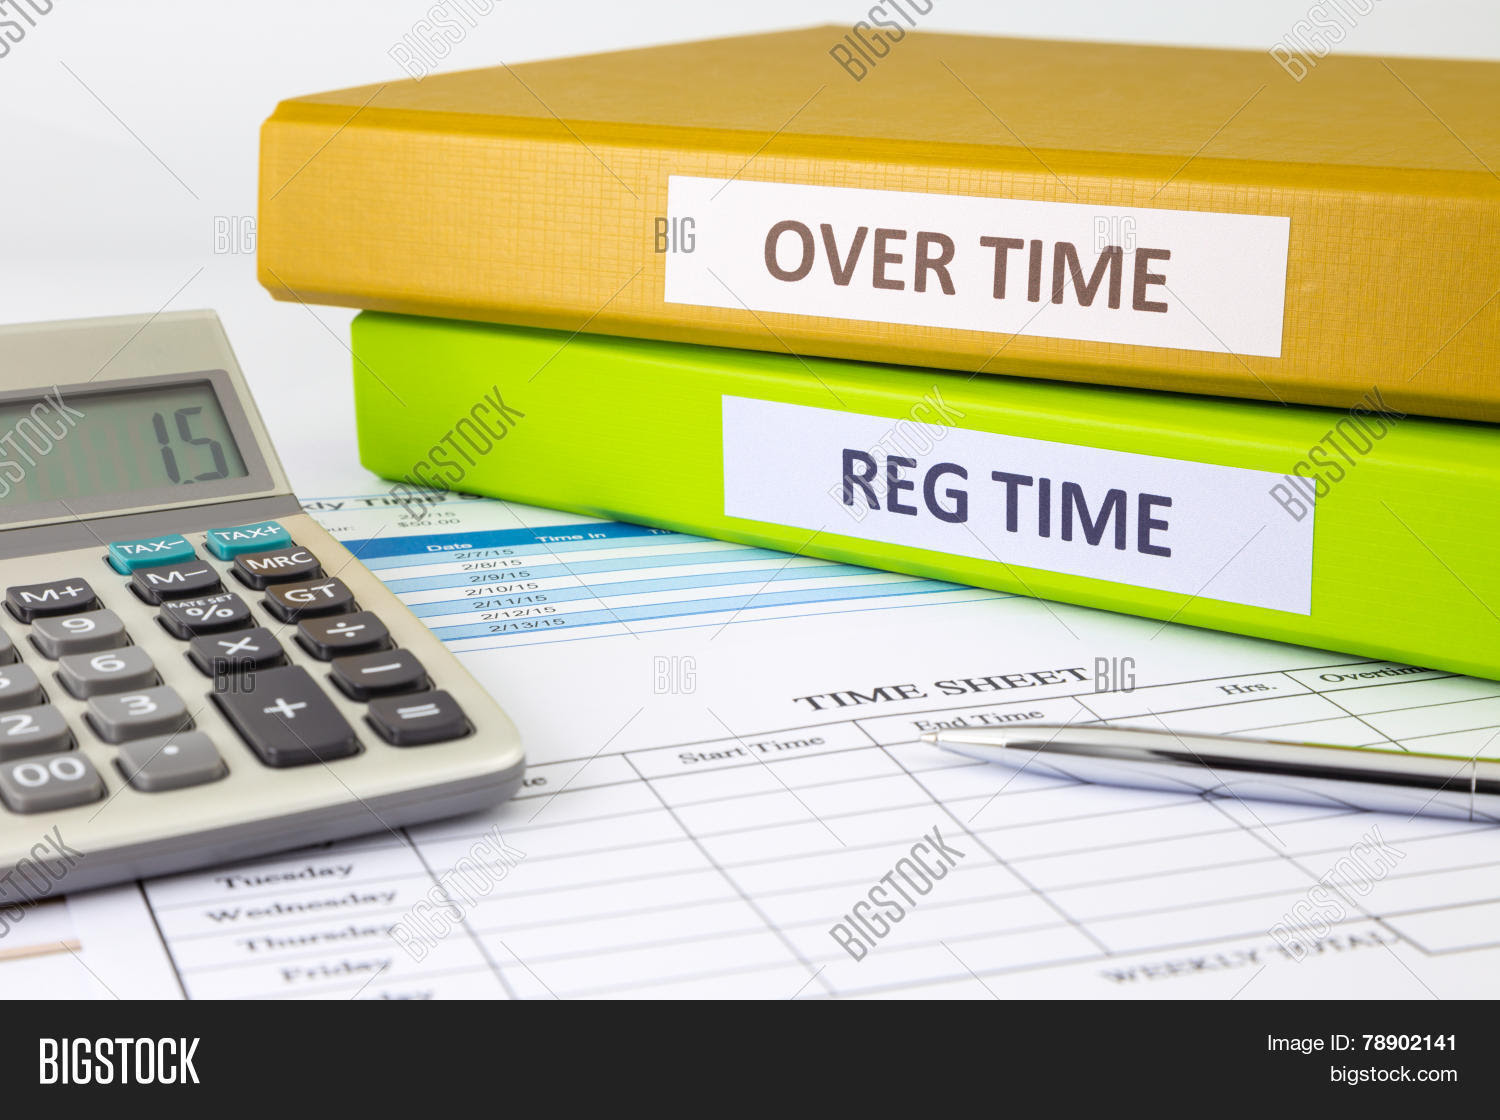 Daily Time Record With Blank Payroll Time Sheet Stock Photo ...